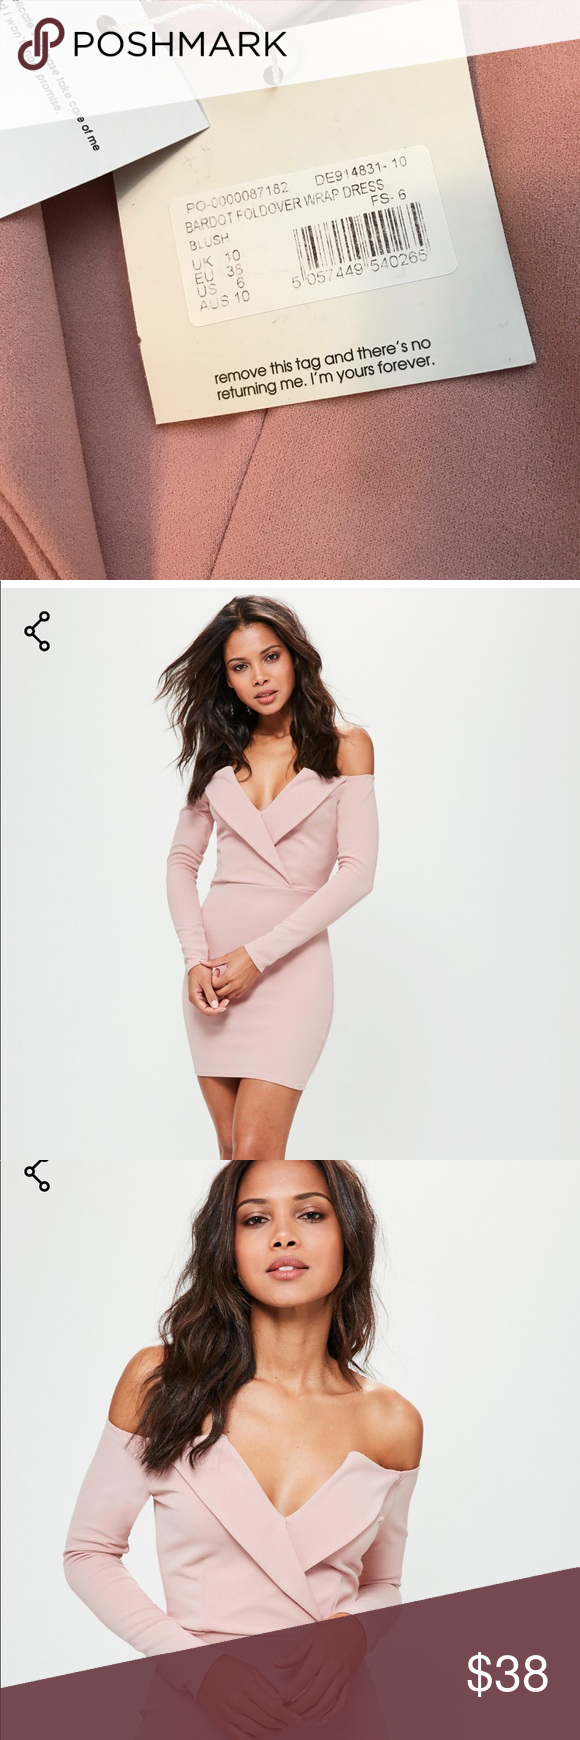 58ea5b81d31f NWT Missguided Bardot foldover Wrap Dress Never worn, Blush-  figure-flattering dress - featuring a foldover wrap style, v neck, long  sleeves and a pale pink ...